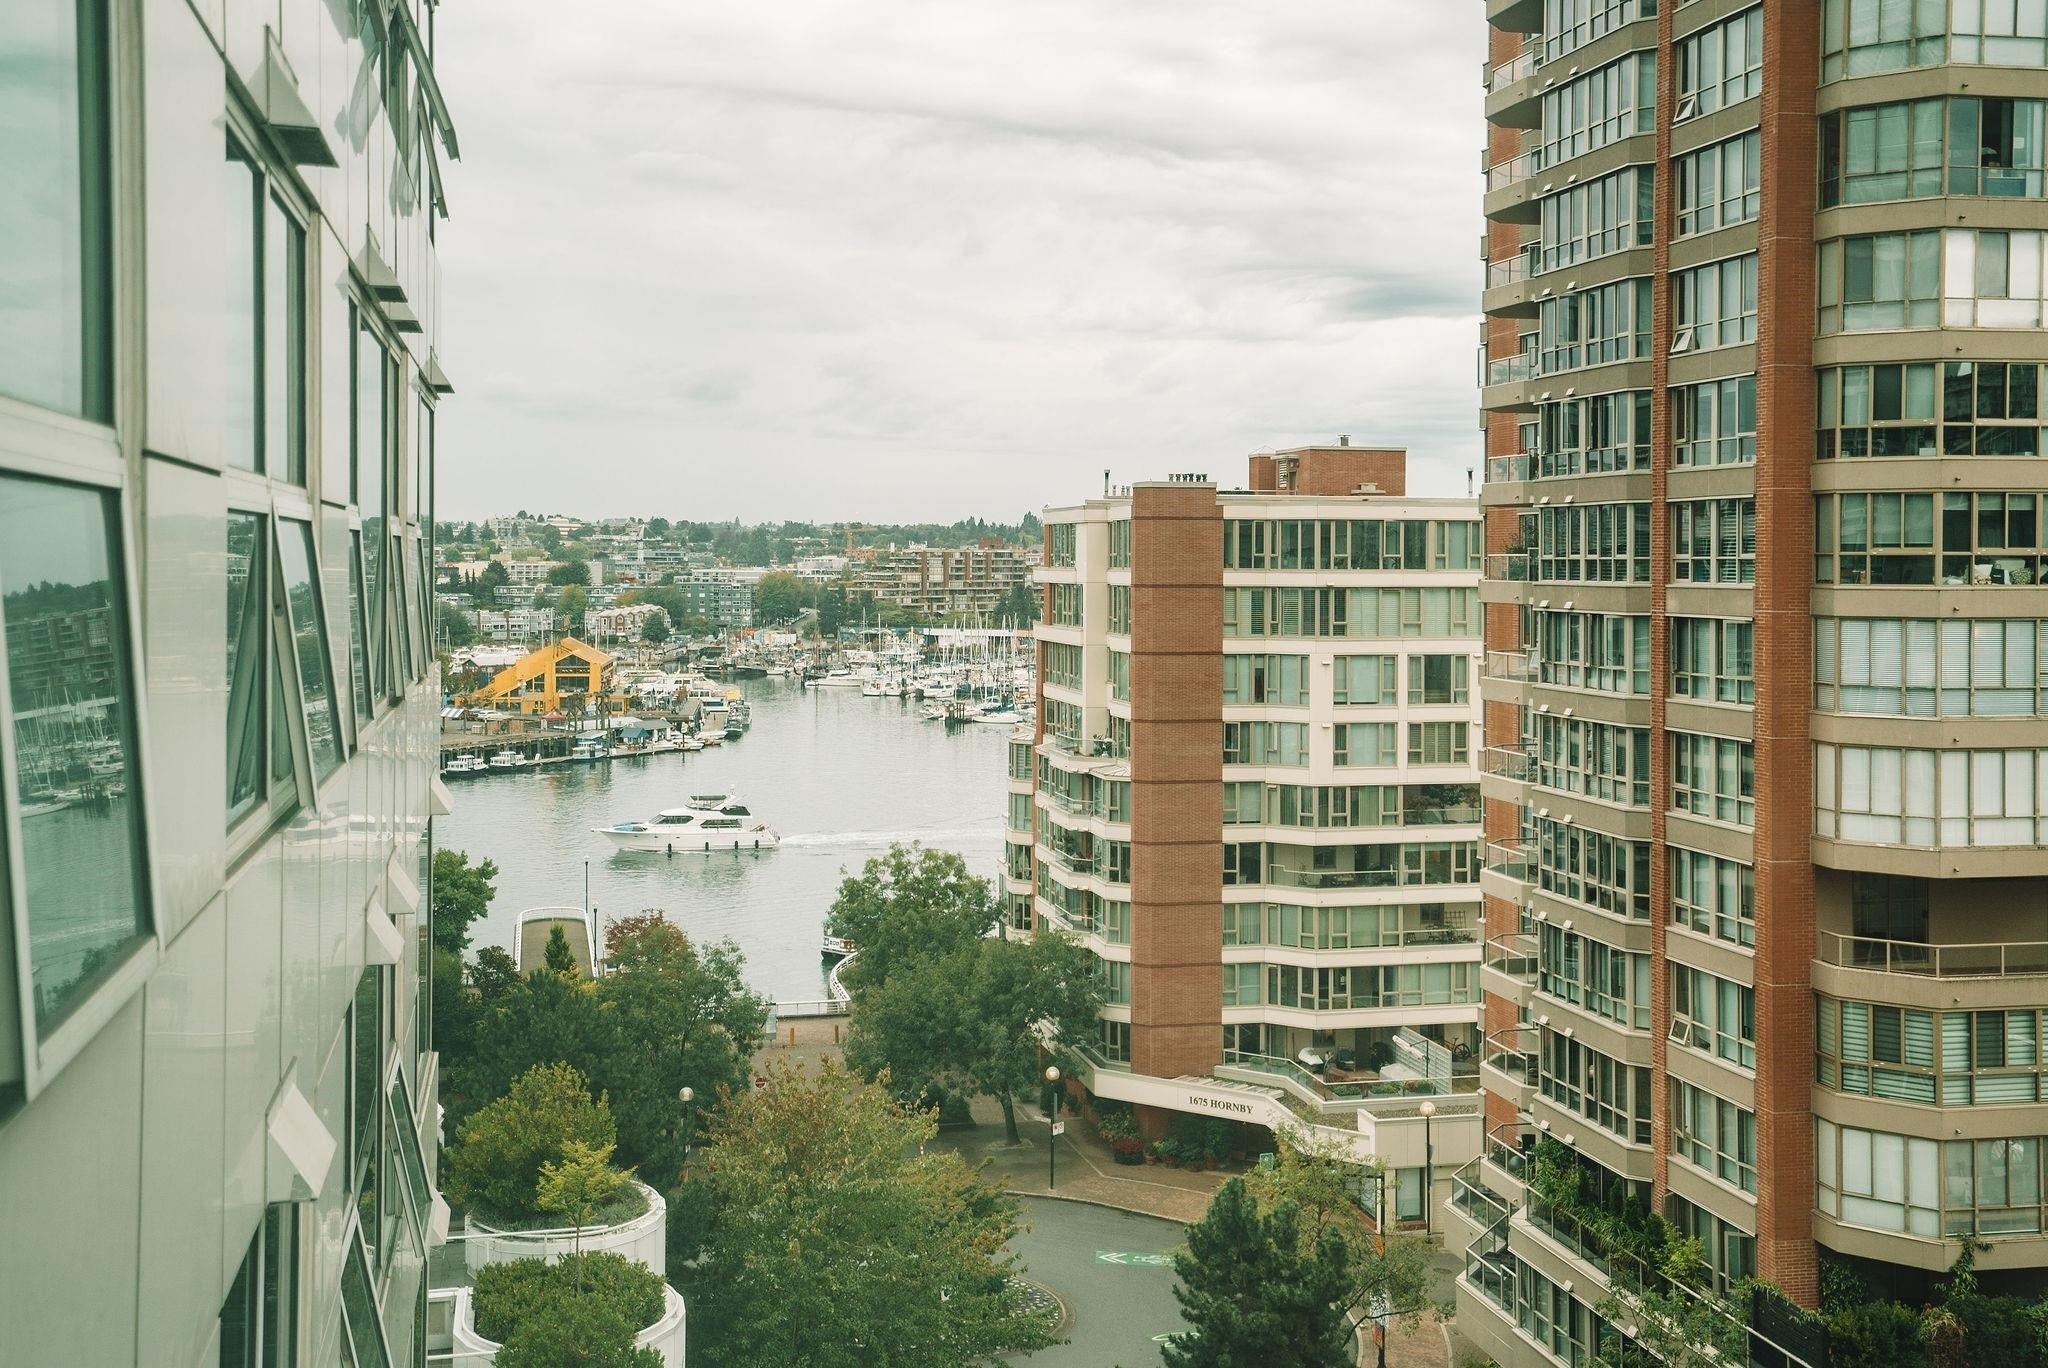 1009 1500 HORNBY STREET - Yaletown Apartment/Condo for sale, 2 Bedrooms (R2617441) - #26